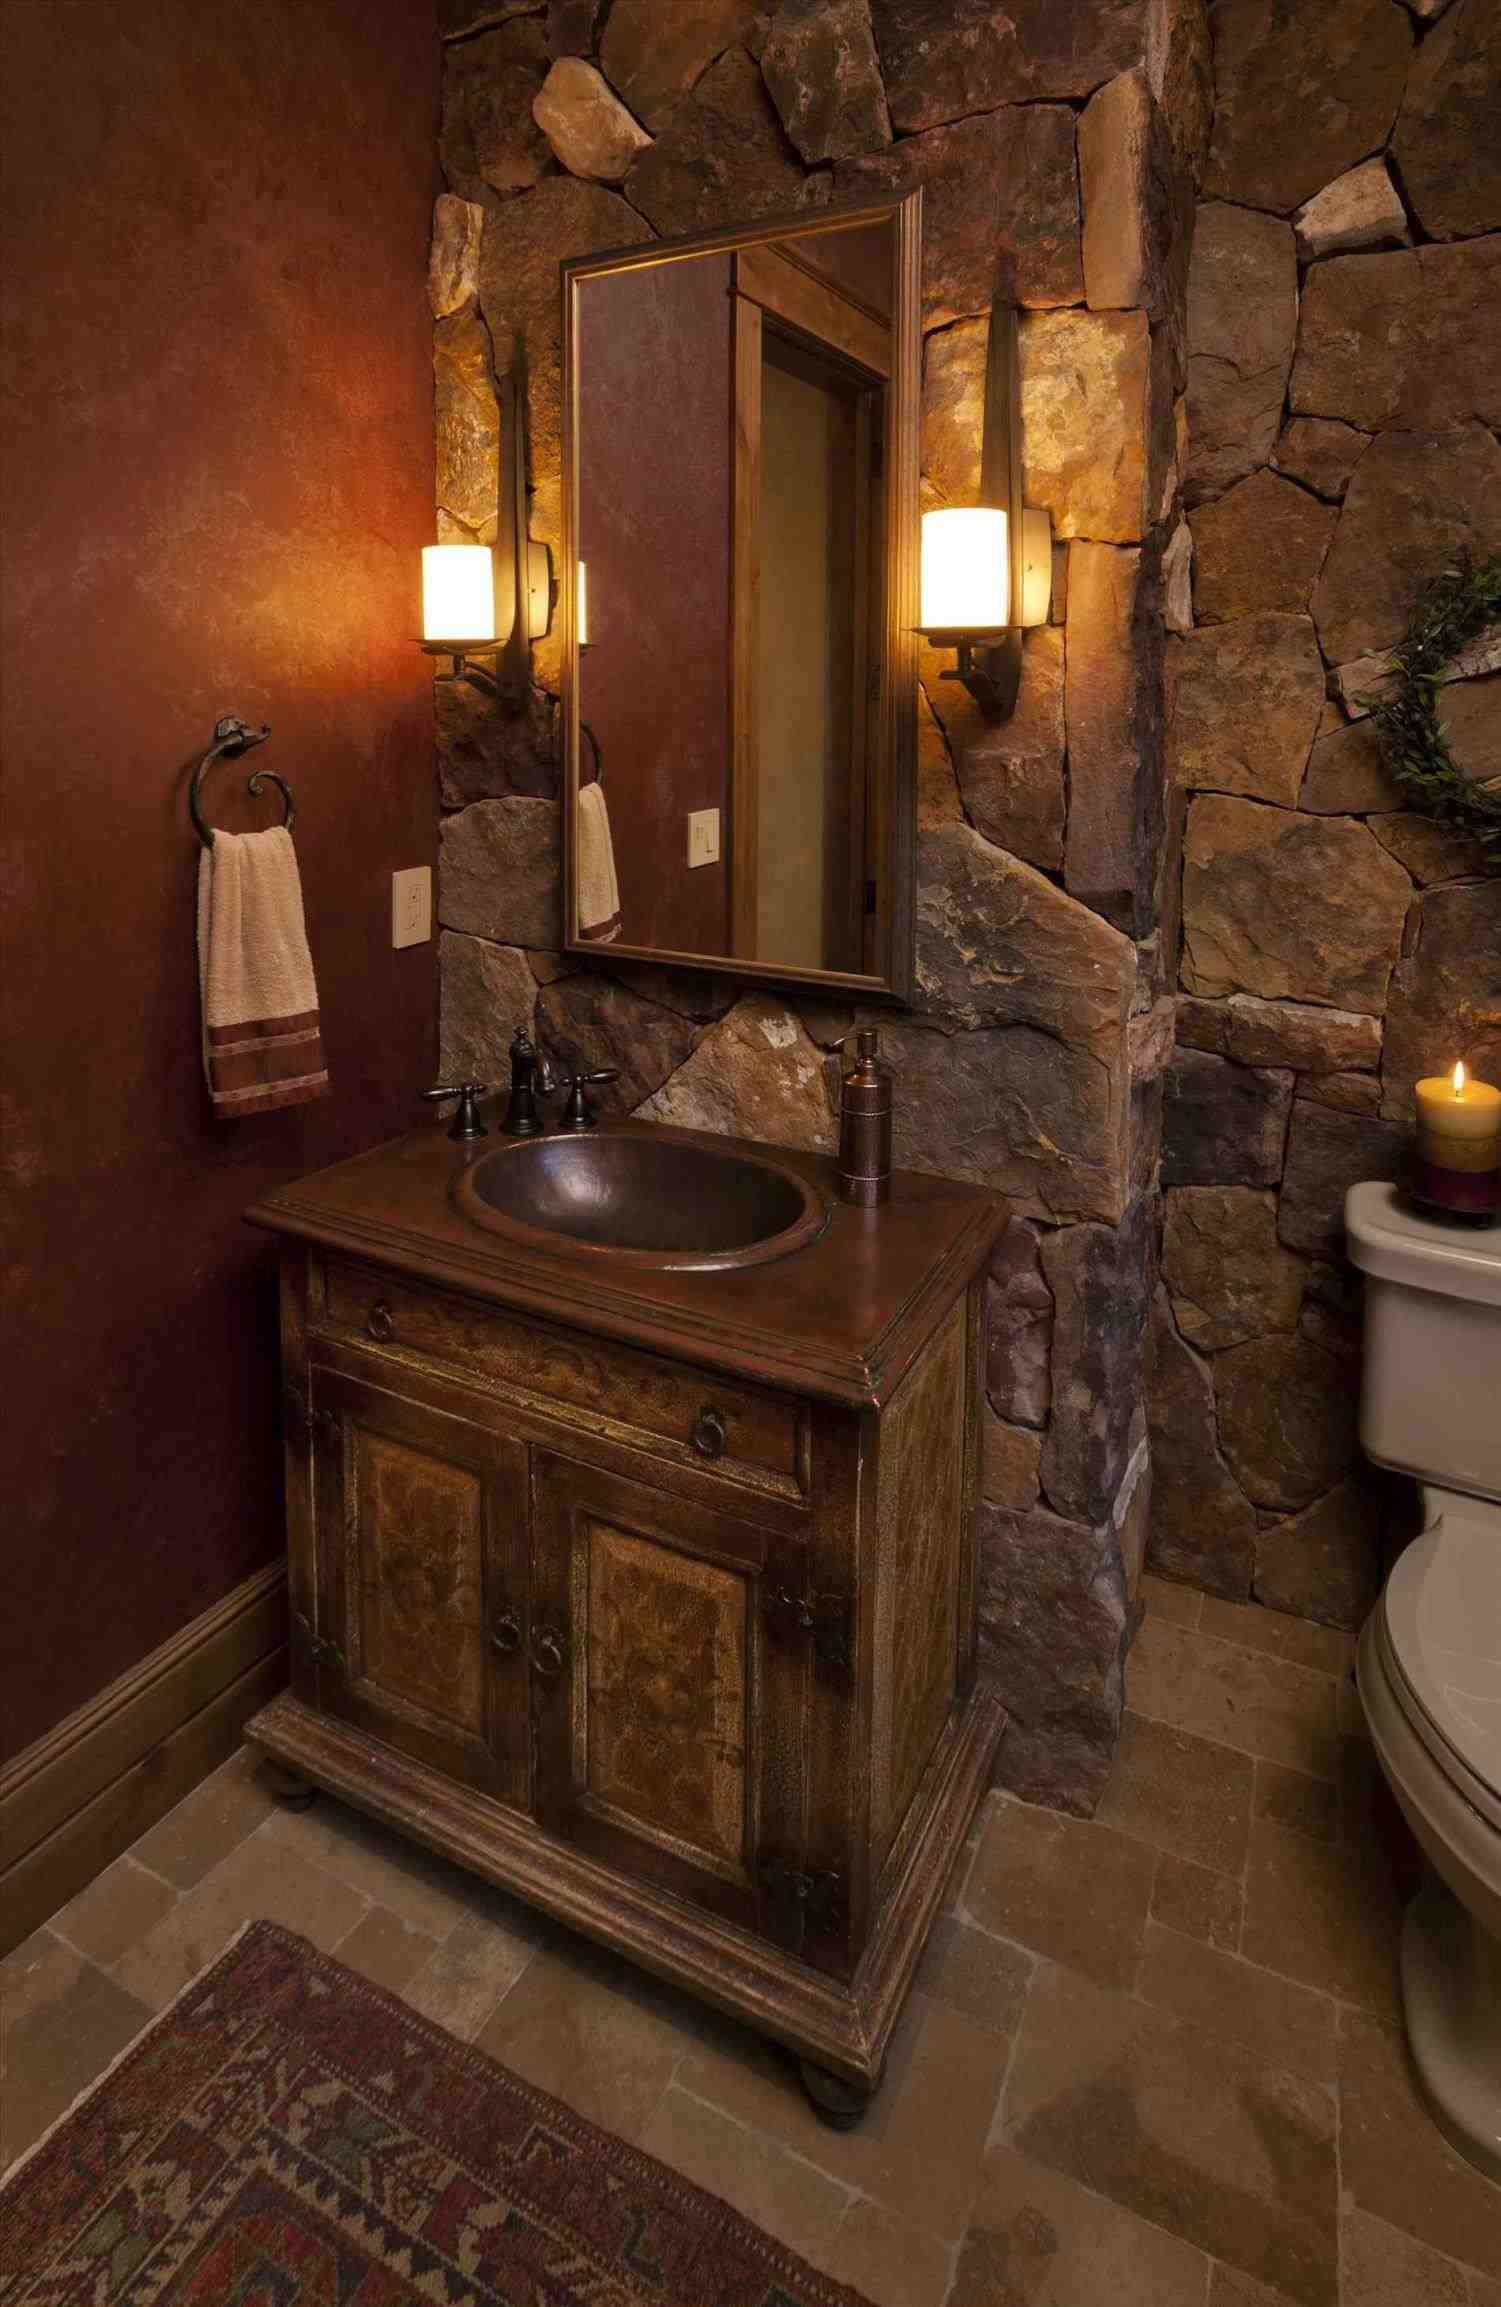 This Small Rustic Bathroom Ideas On A Budget How To Turn A Cabinet Into A Bathroom Vanity Rustic Bathrooms Rustic Bathroom Lighting Rustic Bathroom Vanities